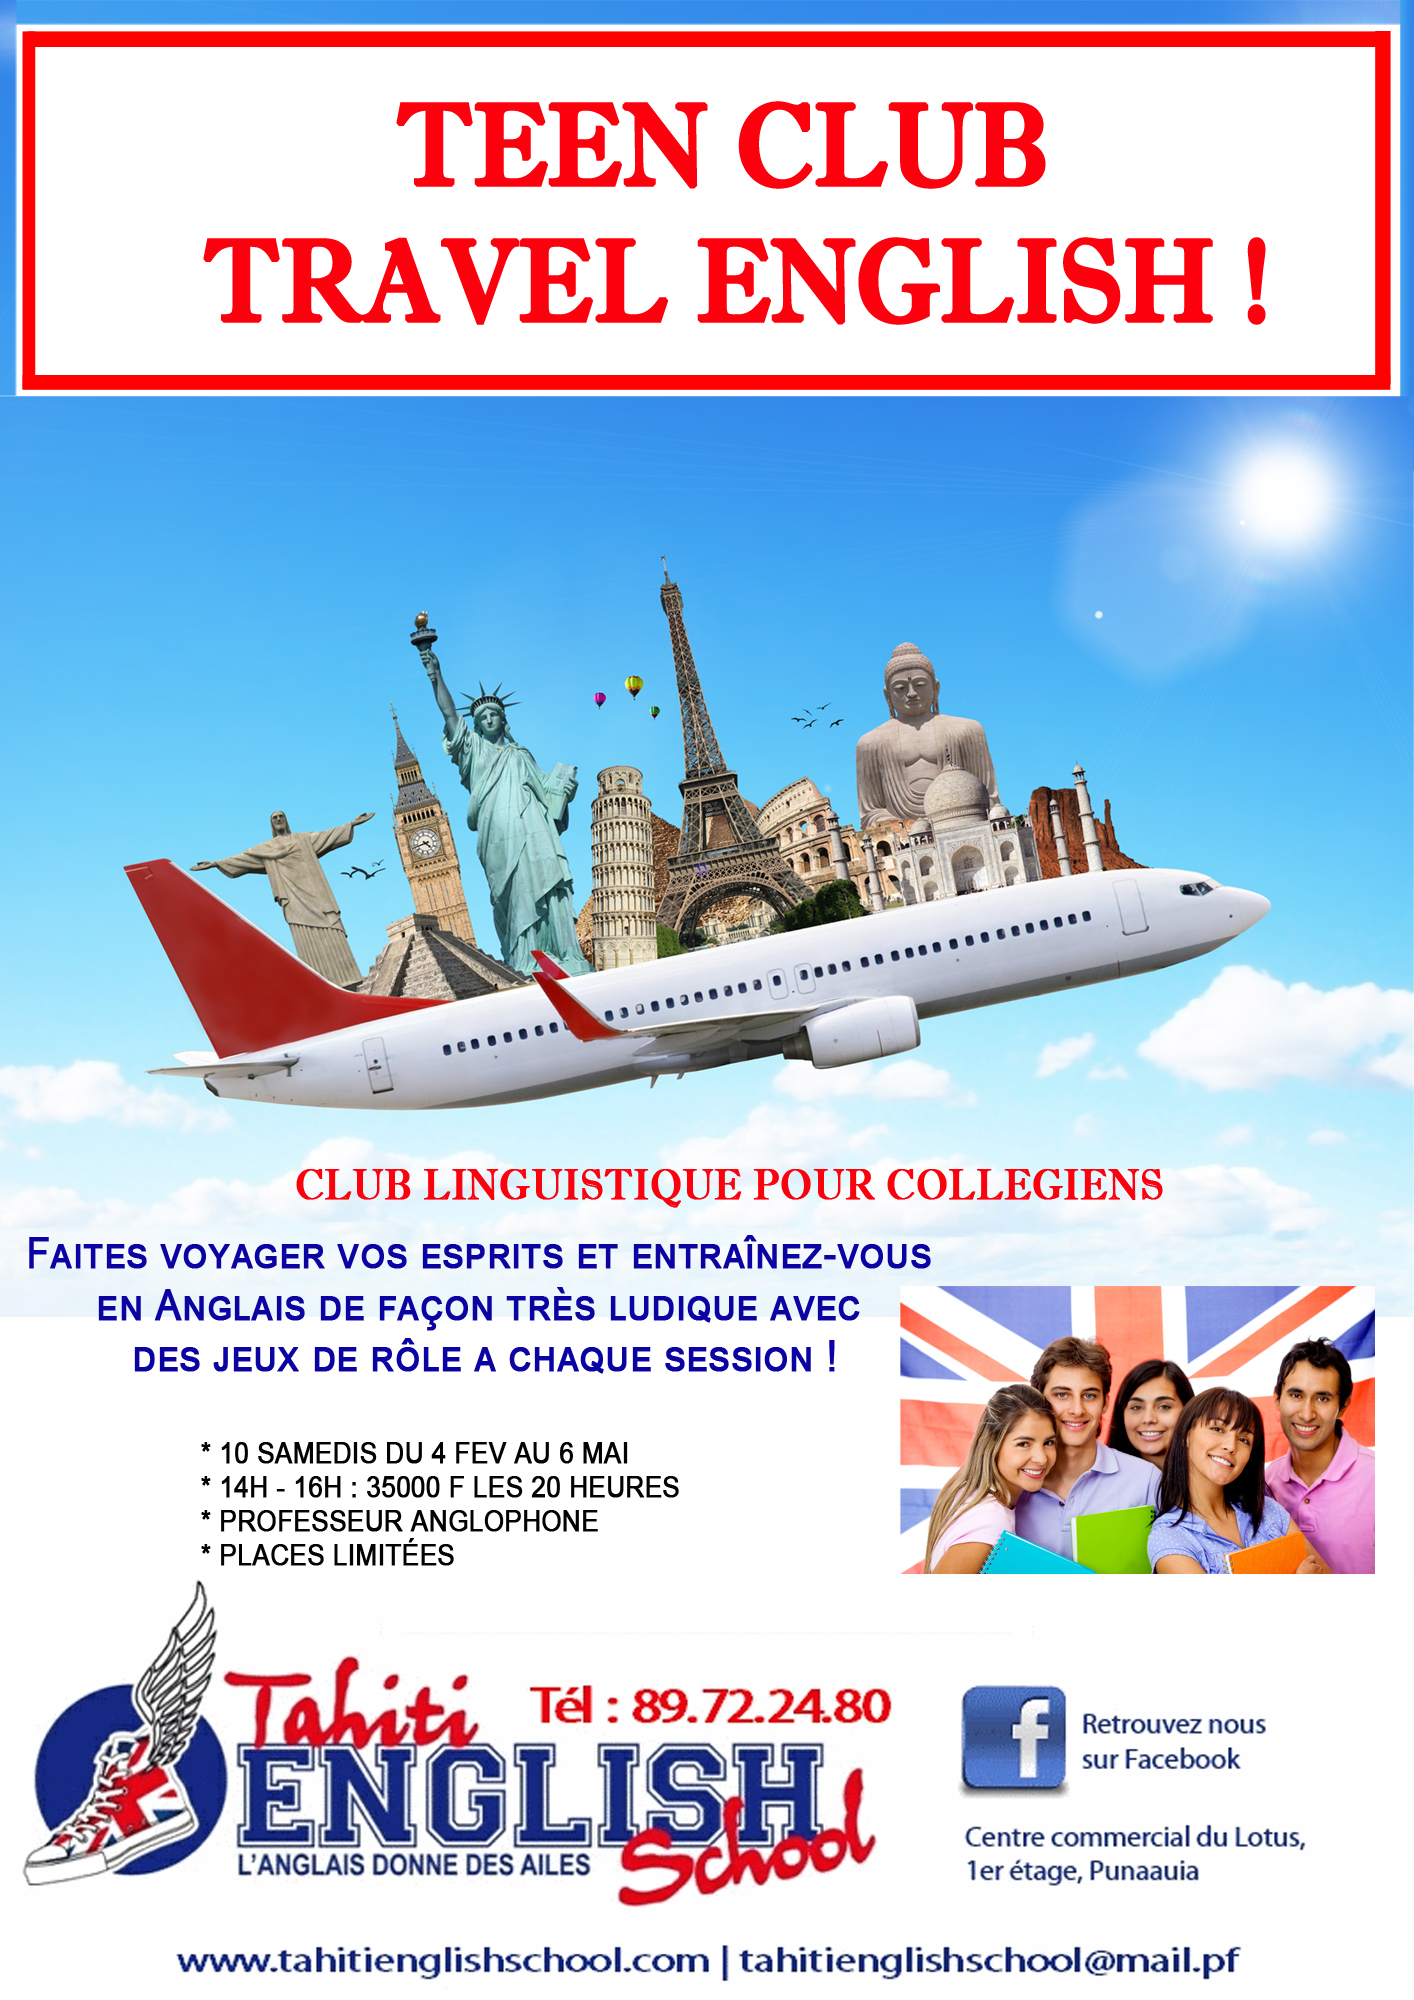 http://www.tahiti-infos.com/agenda/TEEN-CLUB-FEVRIER-2017-FUN-ENGLISH-FOR-TRAVEL-_ae425795.html